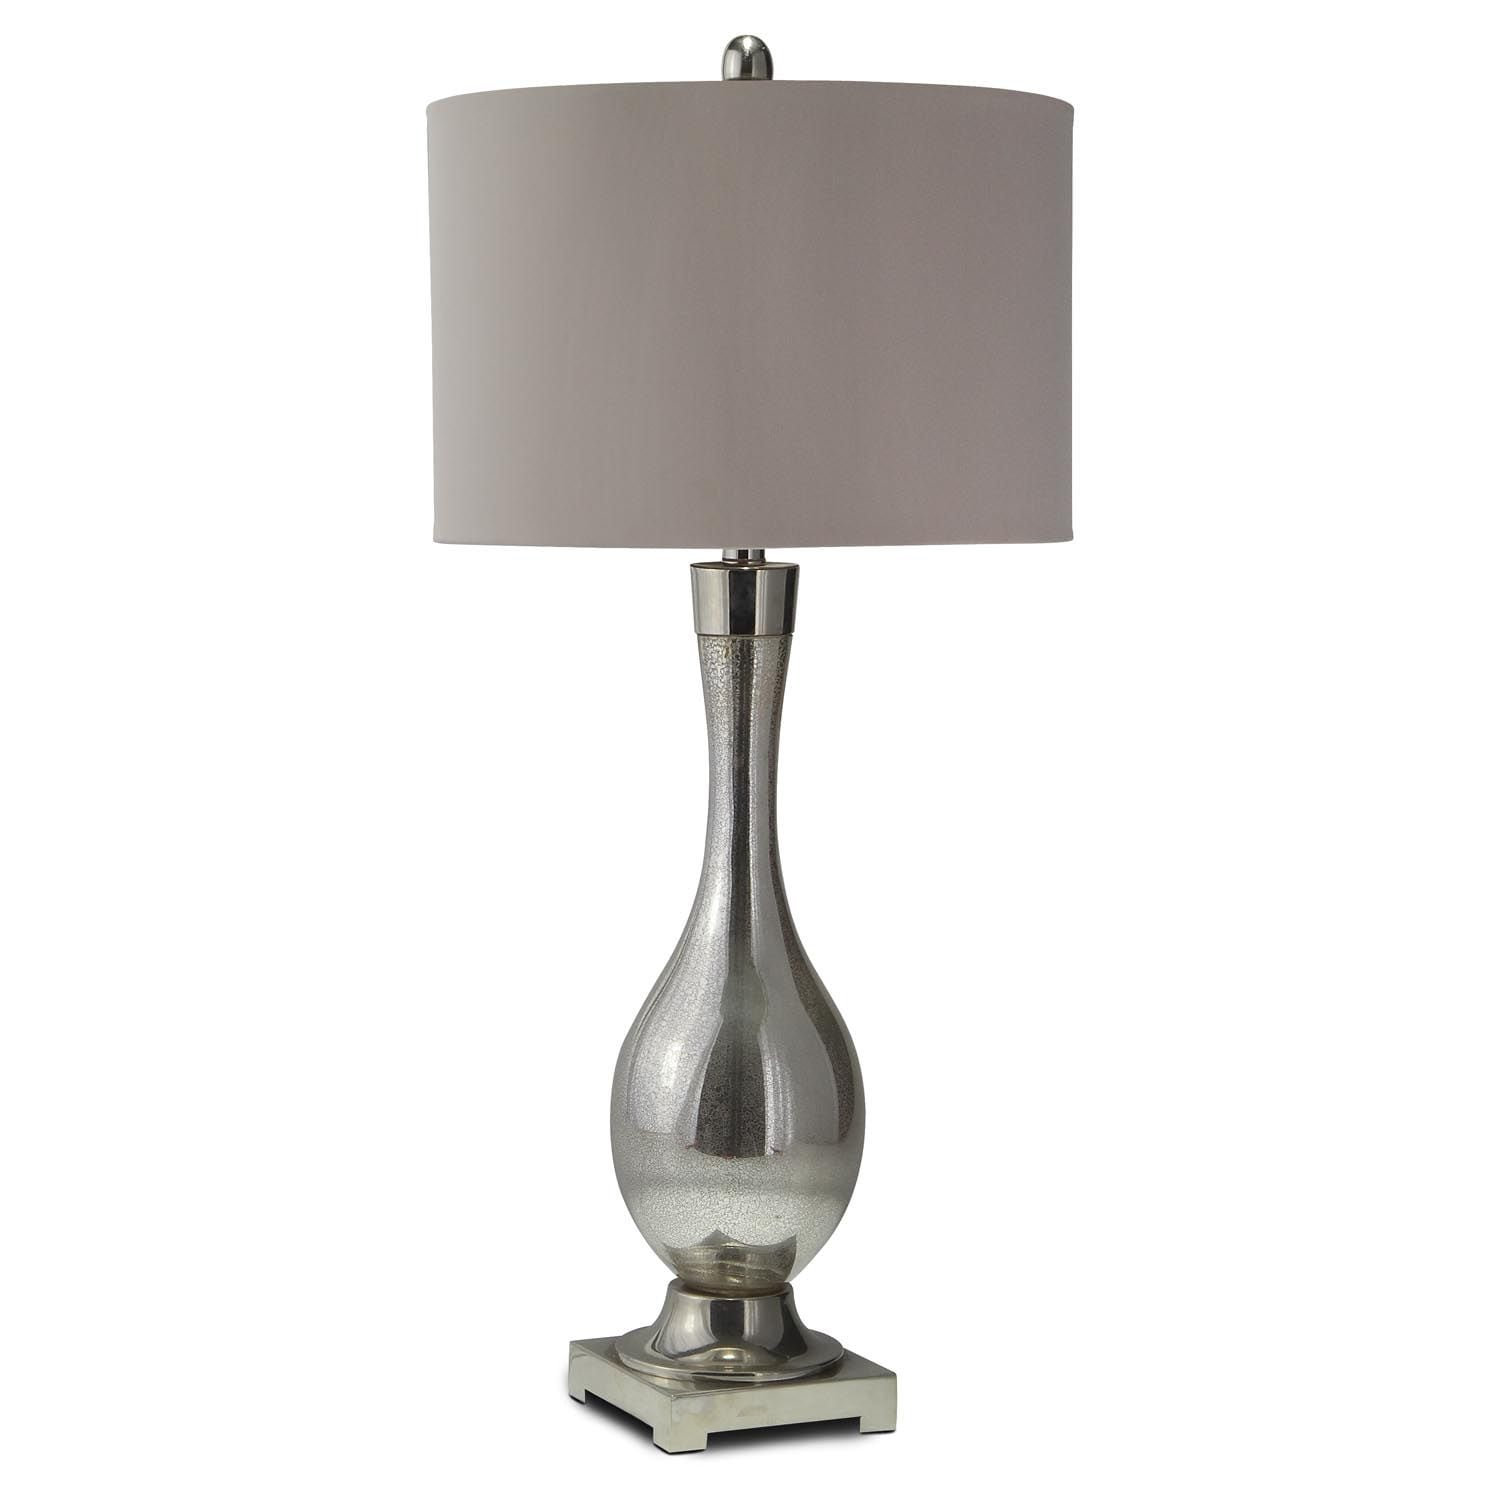 mercury glass table lamp value city furniture. Black Bedroom Furniture Sets. Home Design Ideas